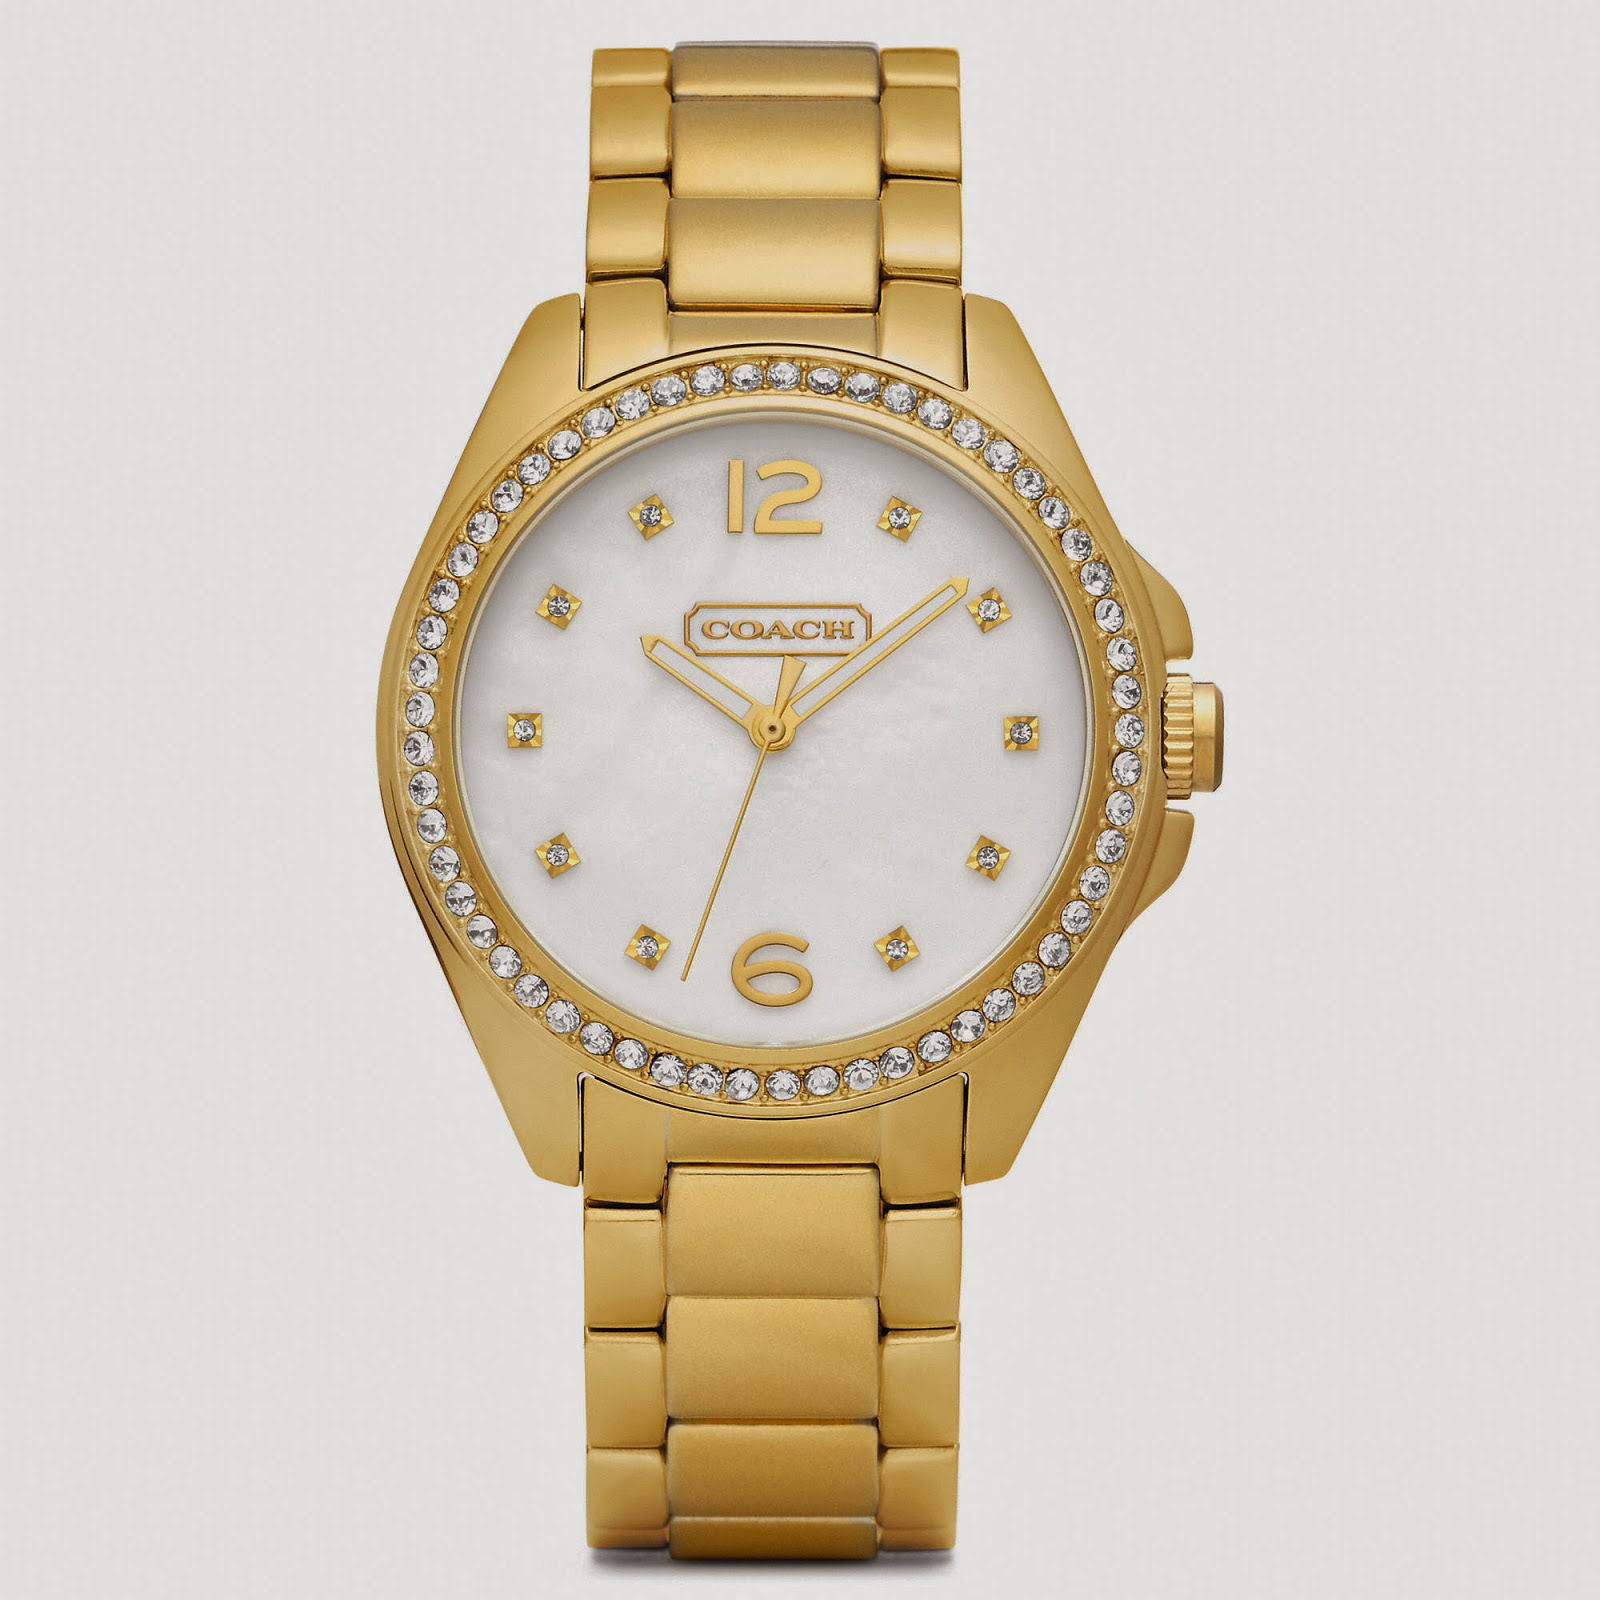 Latest fashion trends coach usa latest watches for men and women 2013